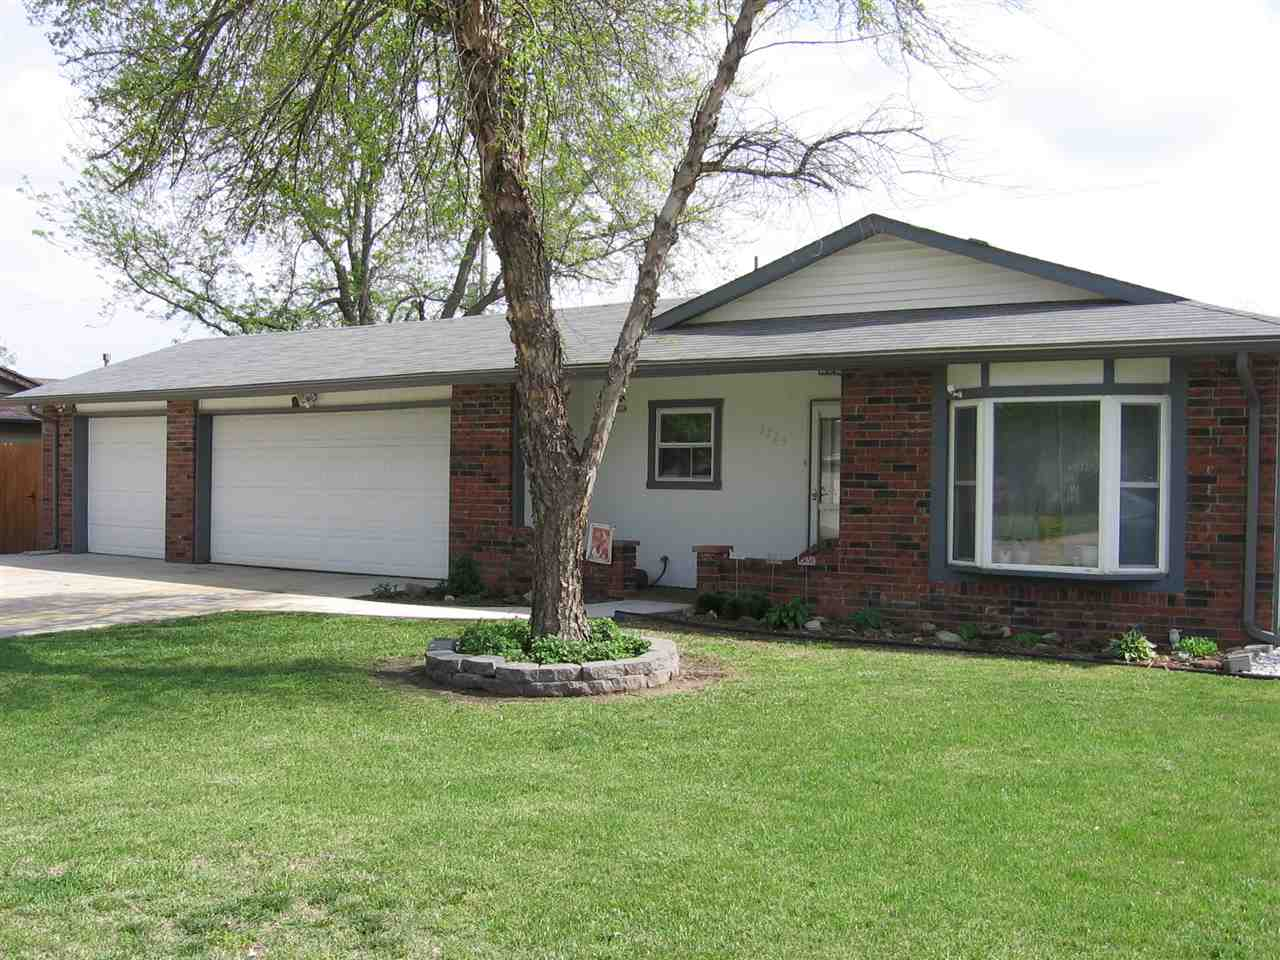 2725 W Crawford, Wichita, KS 67217